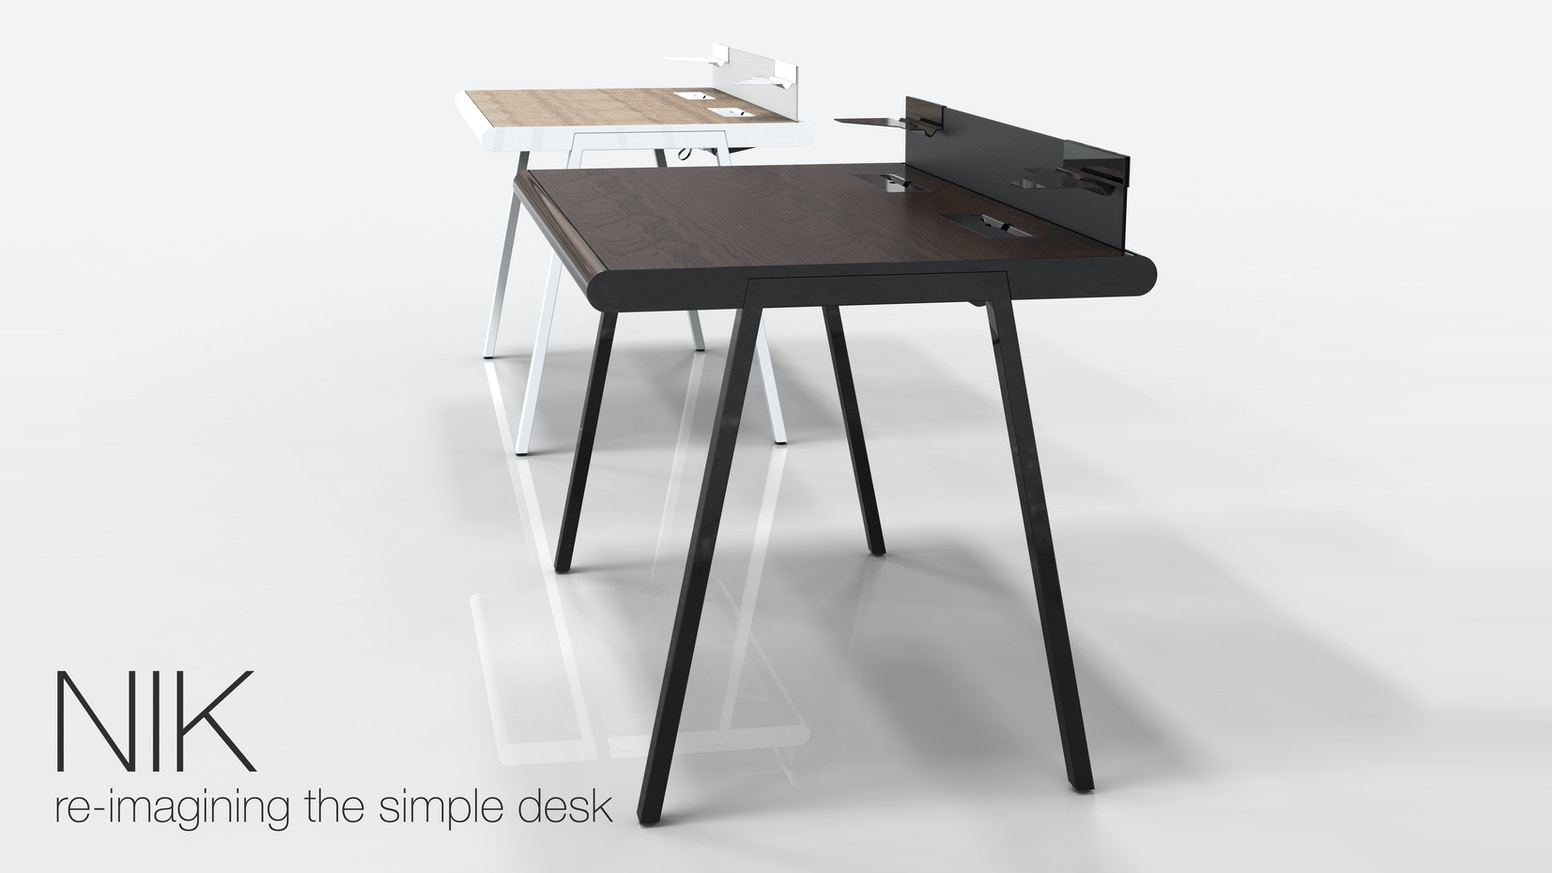 Minimal design to complement your space • Clever features to enhance your productivity • Outstanding quality at an amazing price.